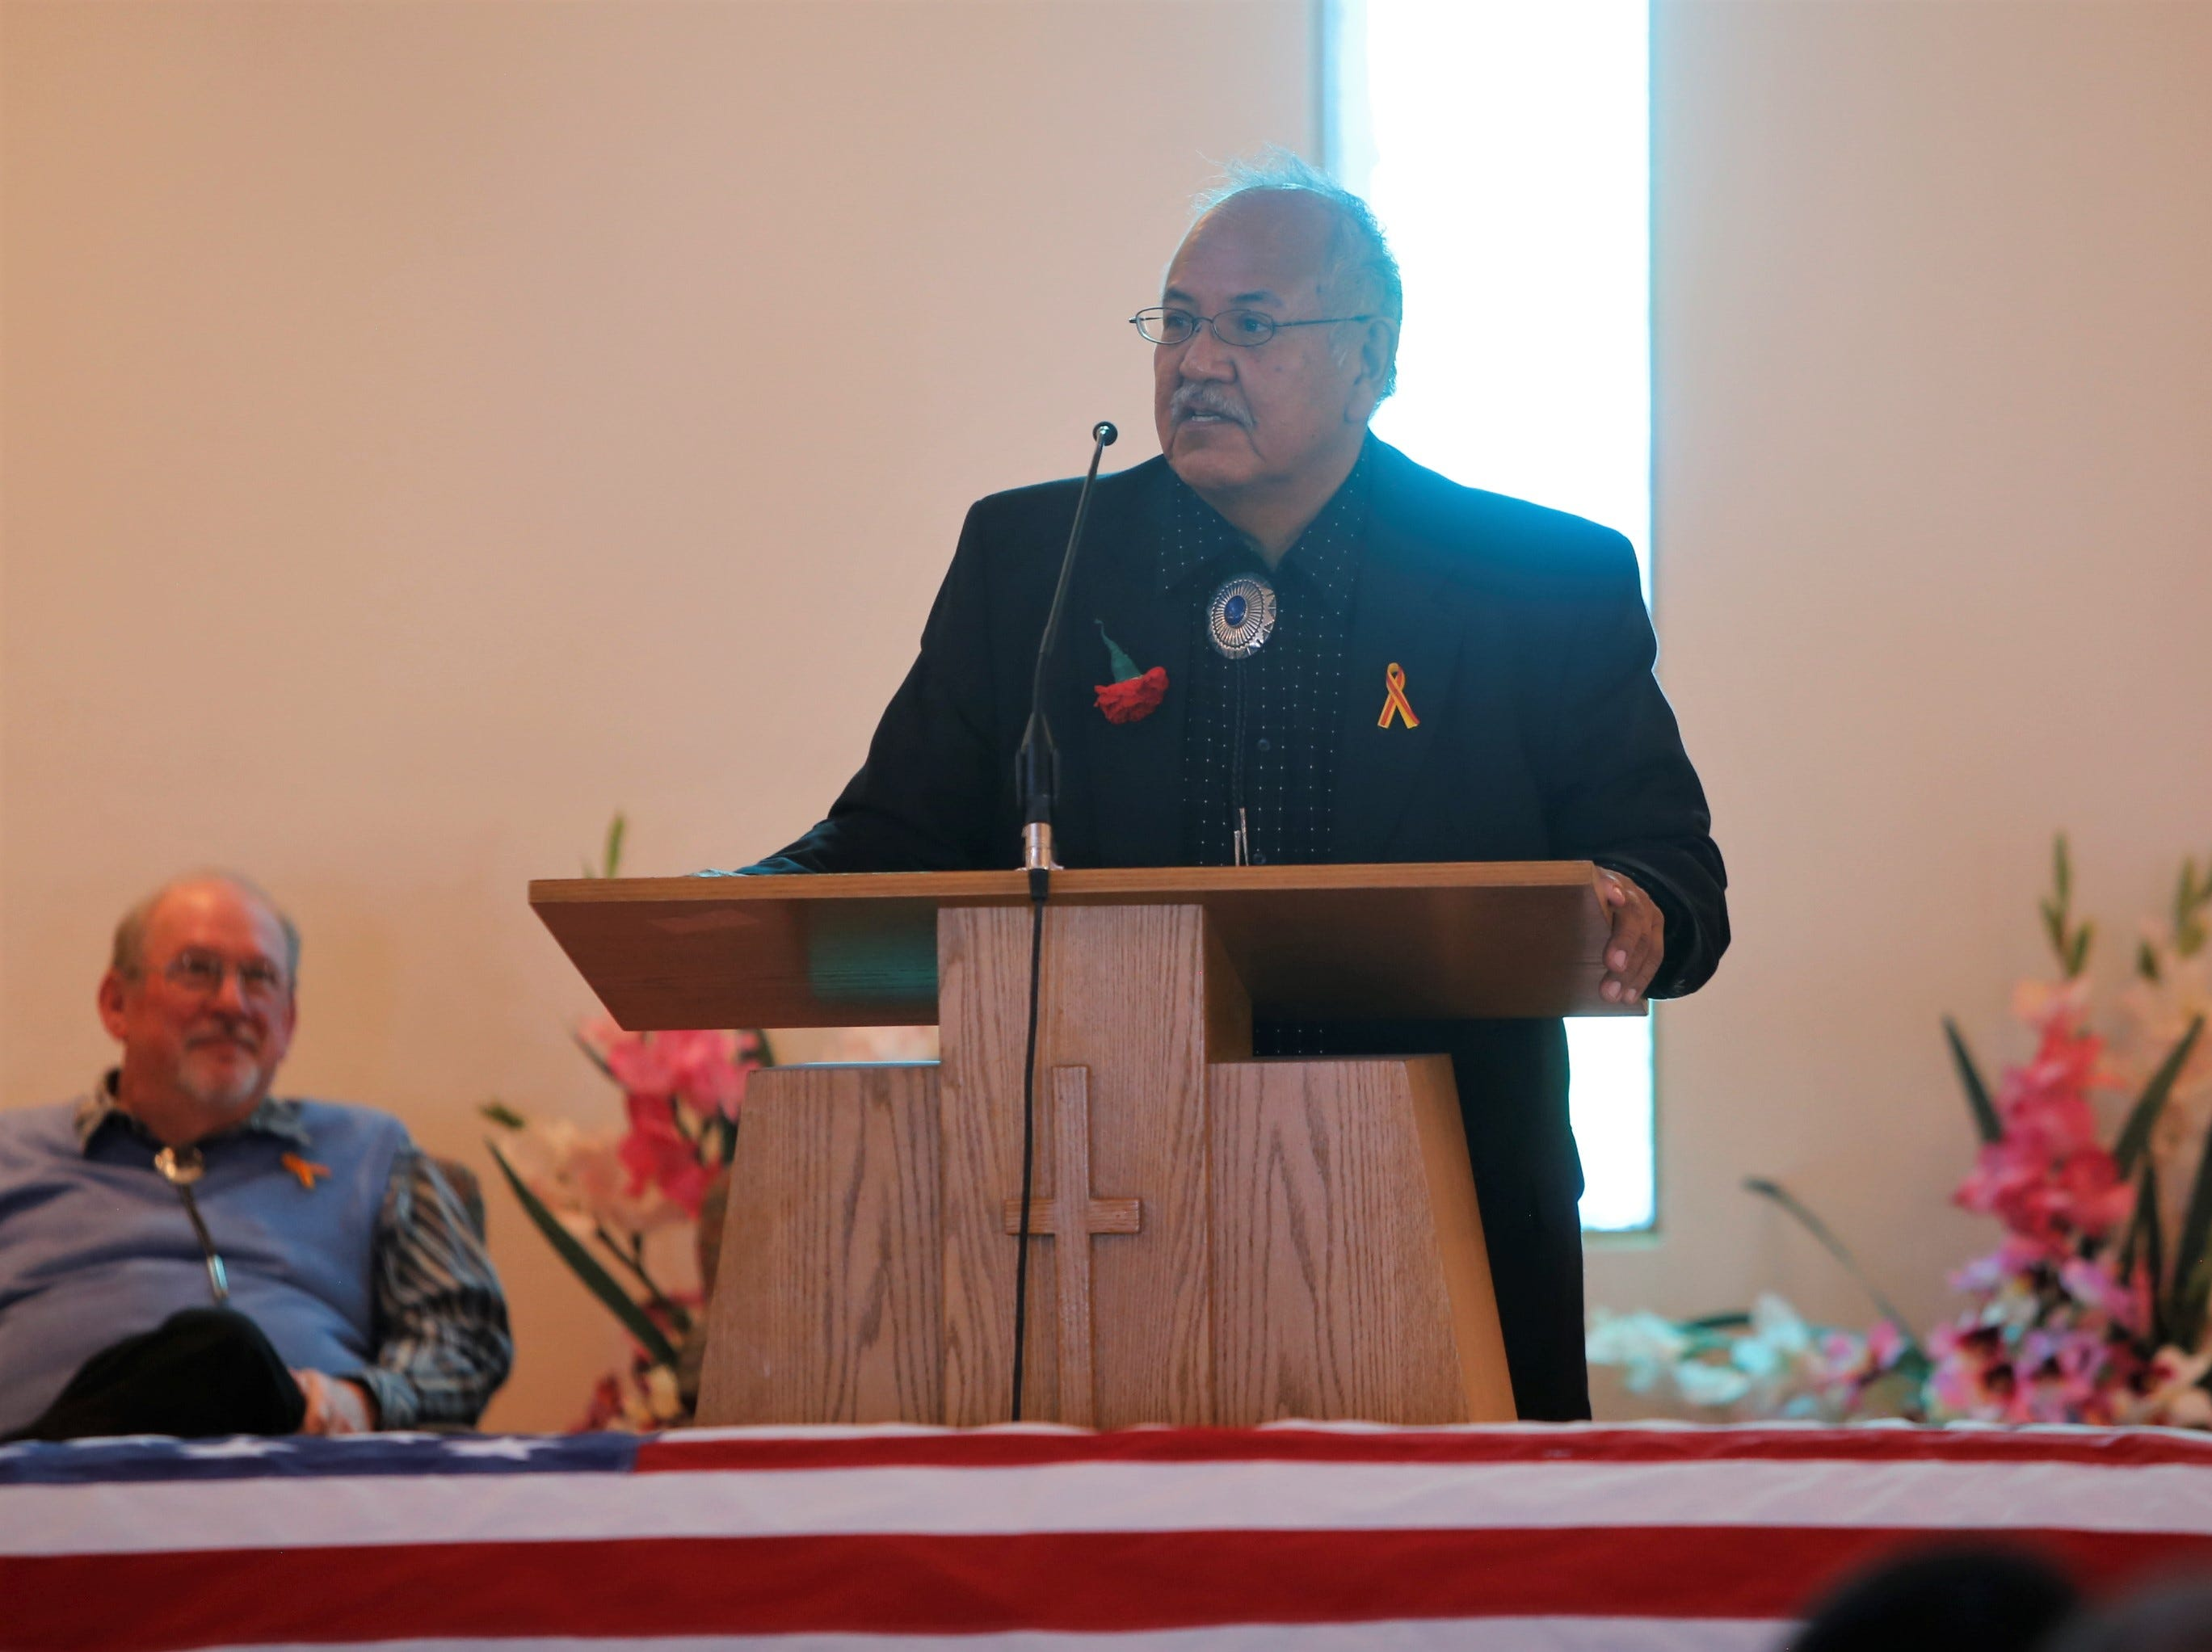 Marvin Newman delivers the eulogy during the funeral service for his father, Navajo Code Talker Alfred K. Newman Sr., on Saturday at the Maranatha Fellowship Christian Reformed Church in Farmington.